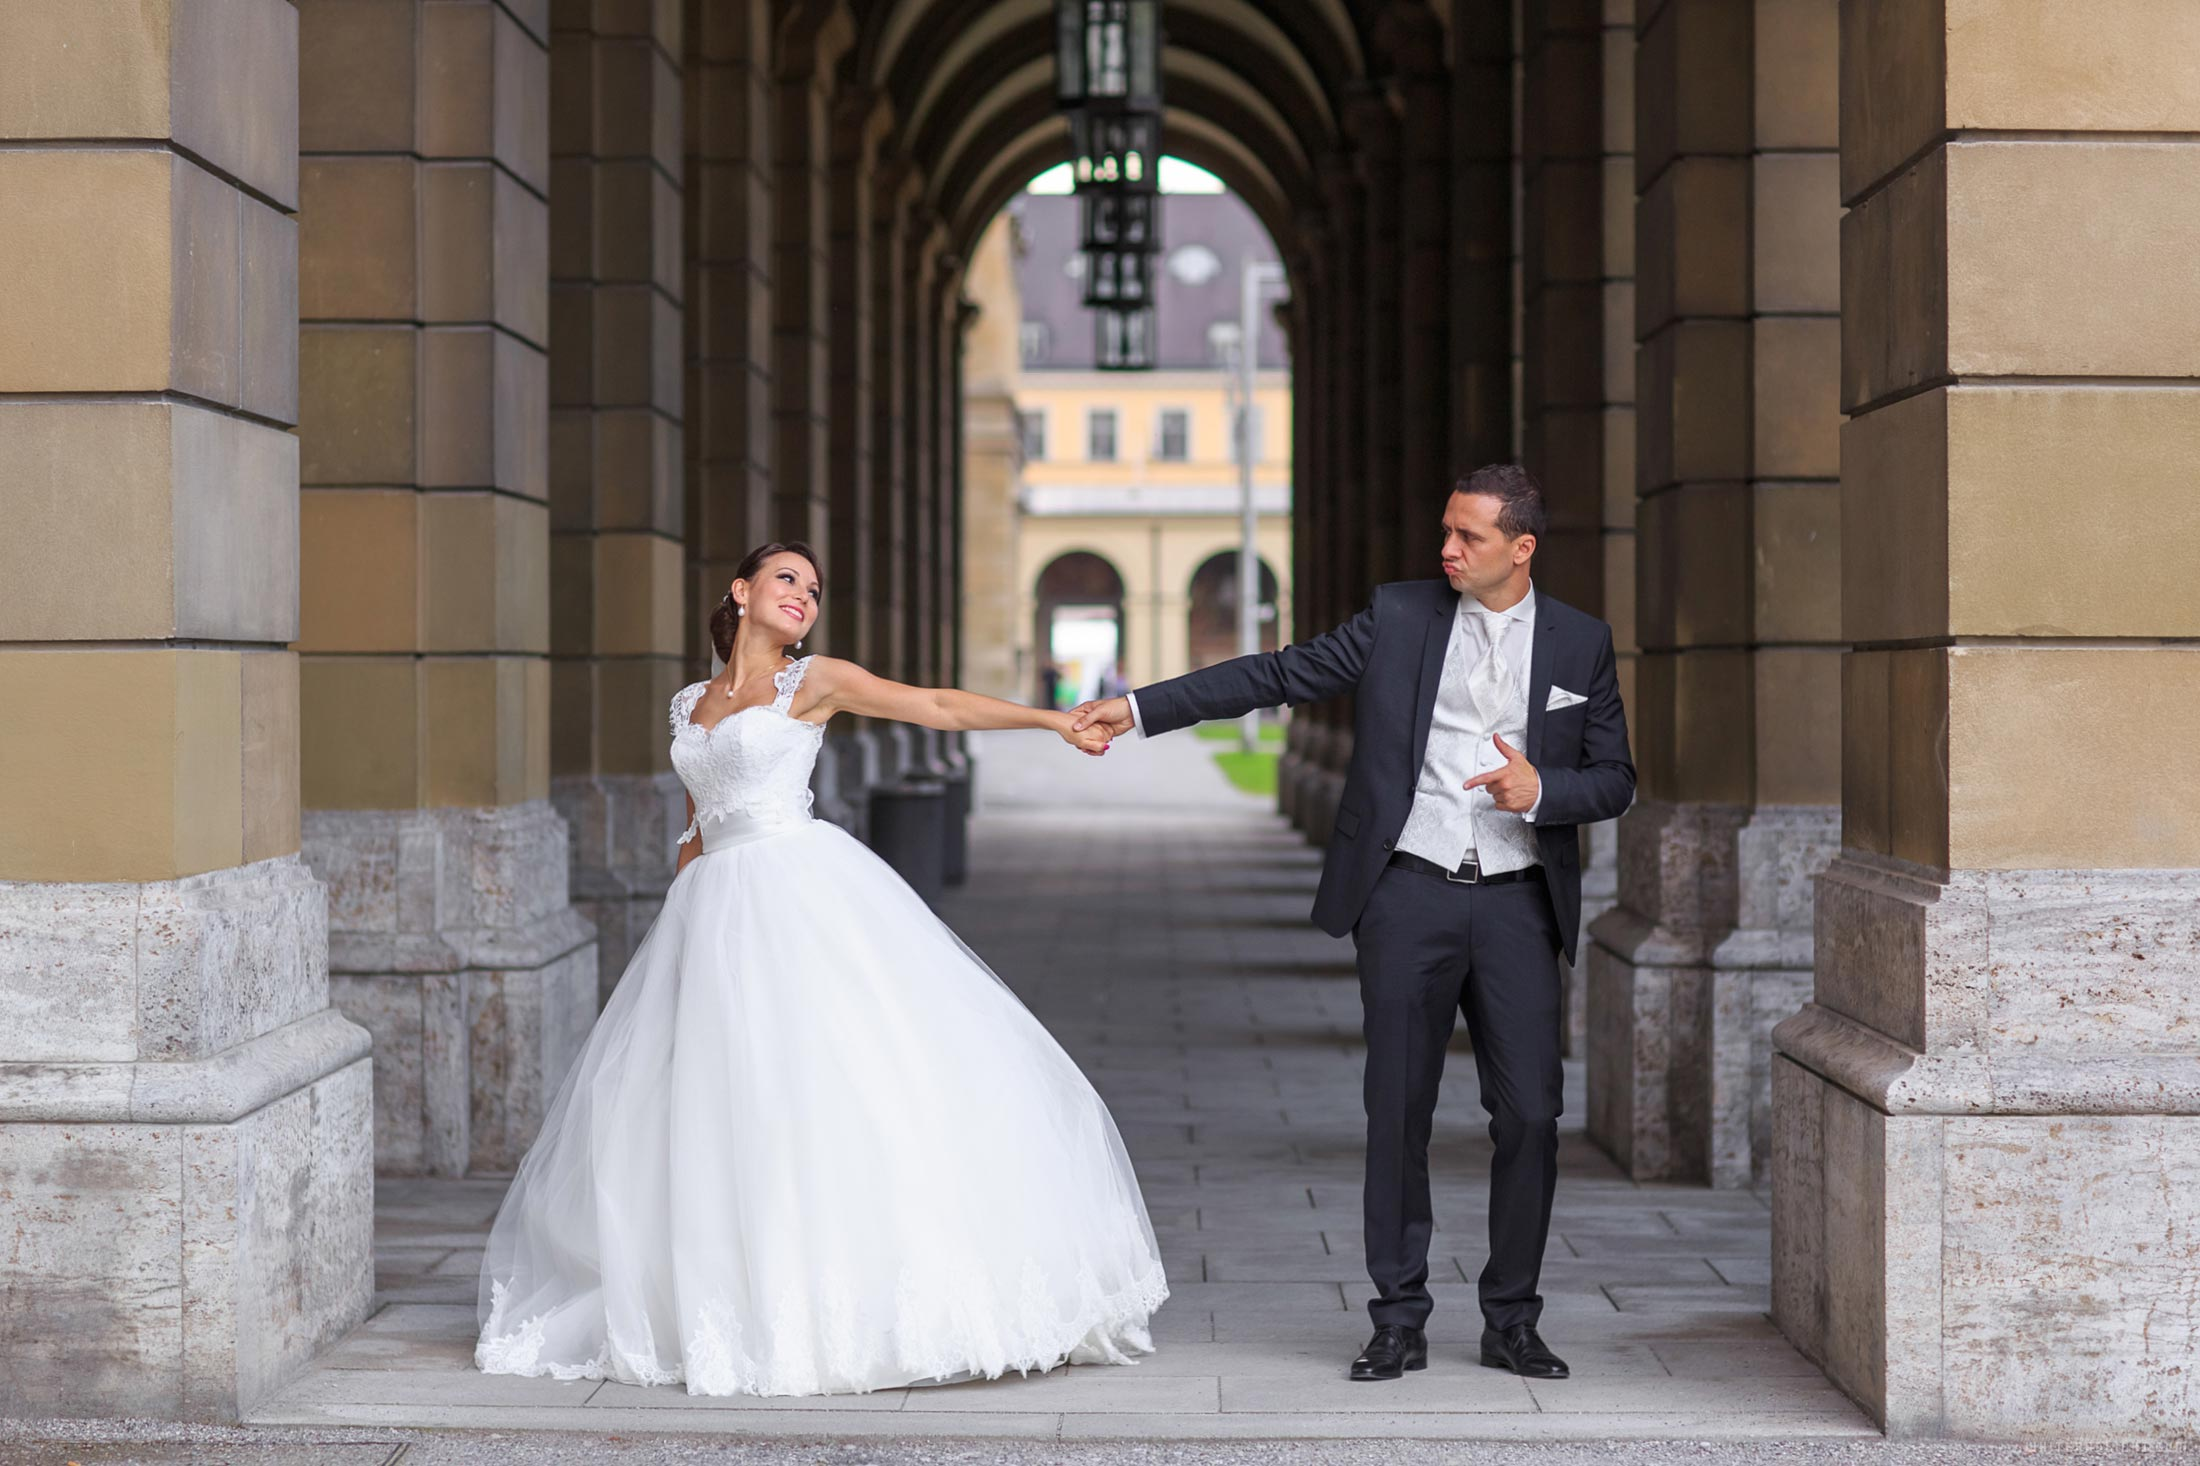 Professional photographer Munich- wedding every weekend